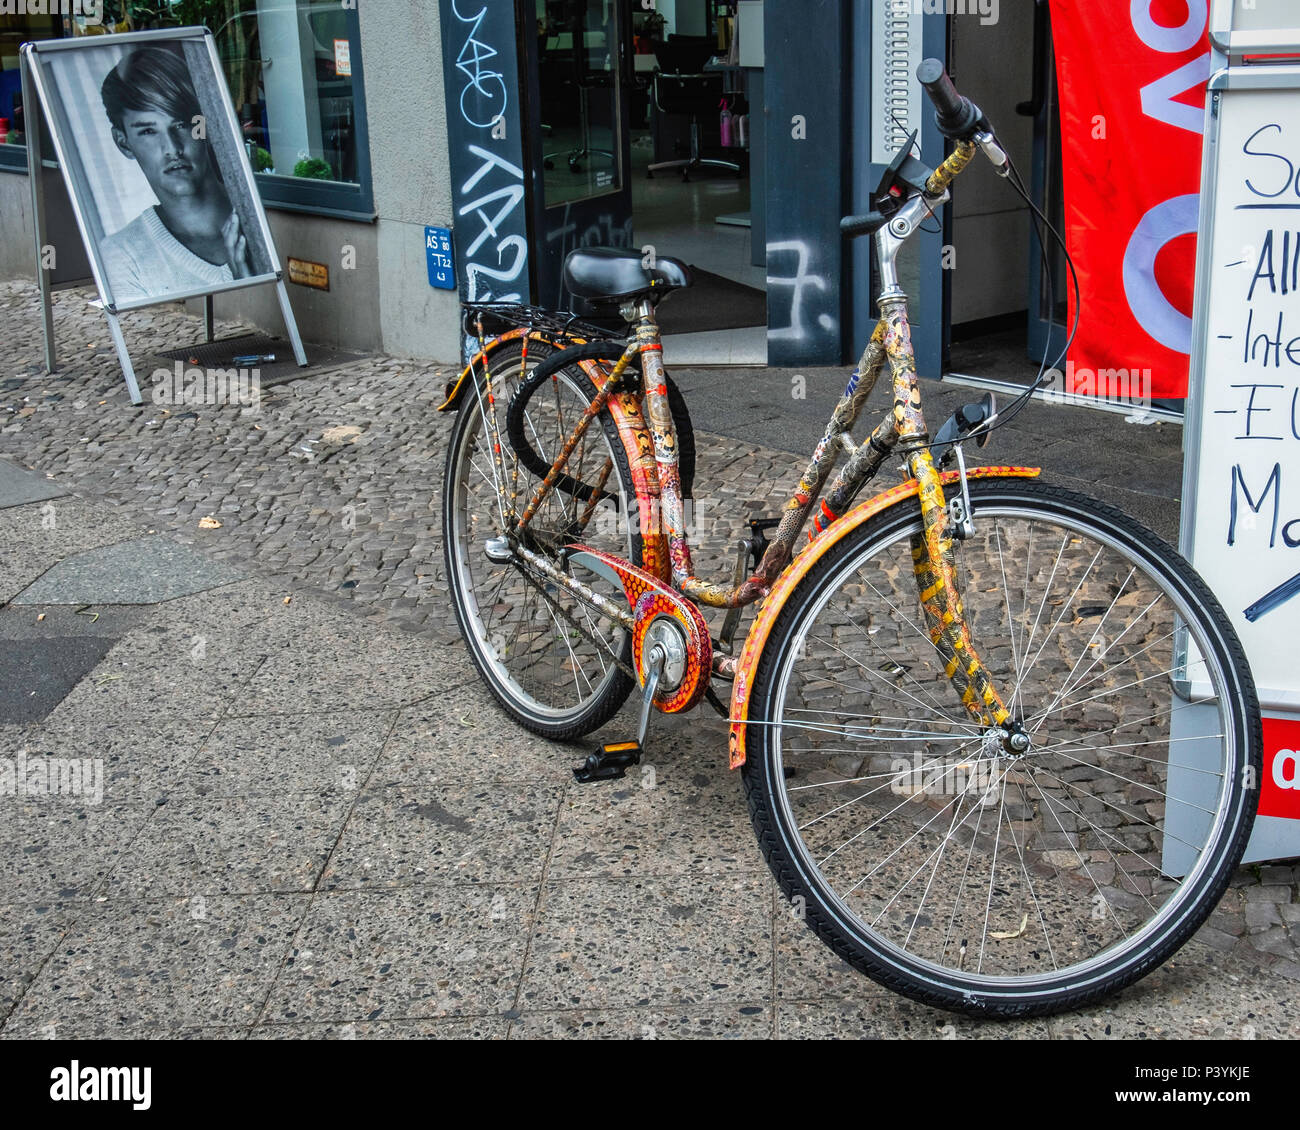 Berlin-Kreuzberg Kottbusser Damm street view. Bicycle with intricate arty paintwork on city pavement - Stock Image